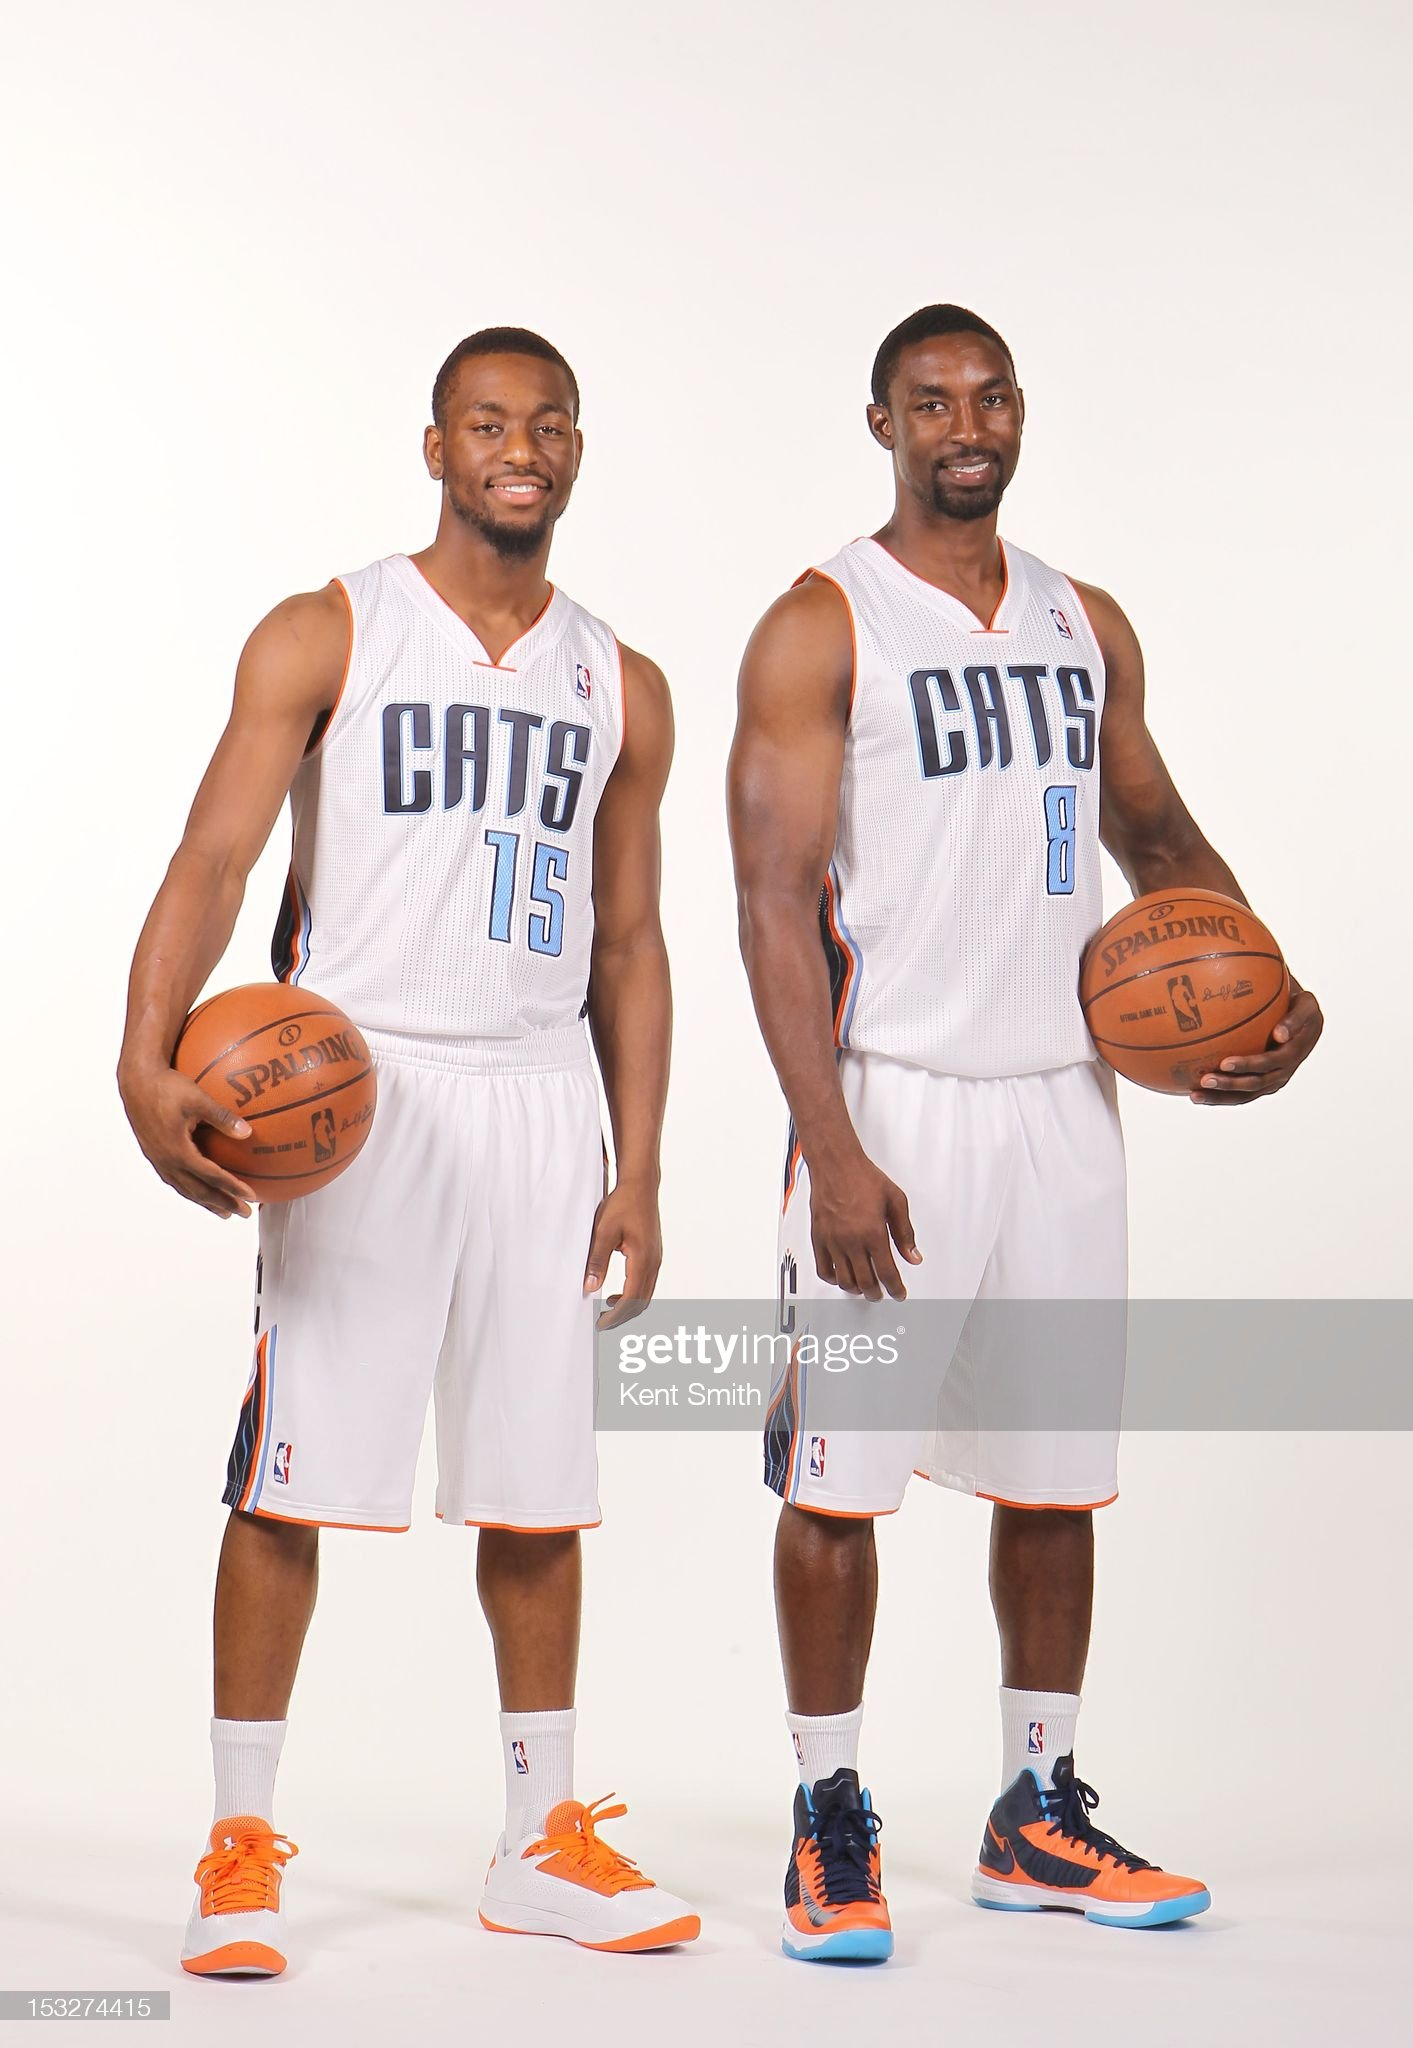 ¿Cuánto mide Kemba Walker? - Altura - Real height Kemba-walker-and-ben-gordon-of-the-charlotte-bobcats-pose-for-a-the-picture-id153274415?s=2048x2048